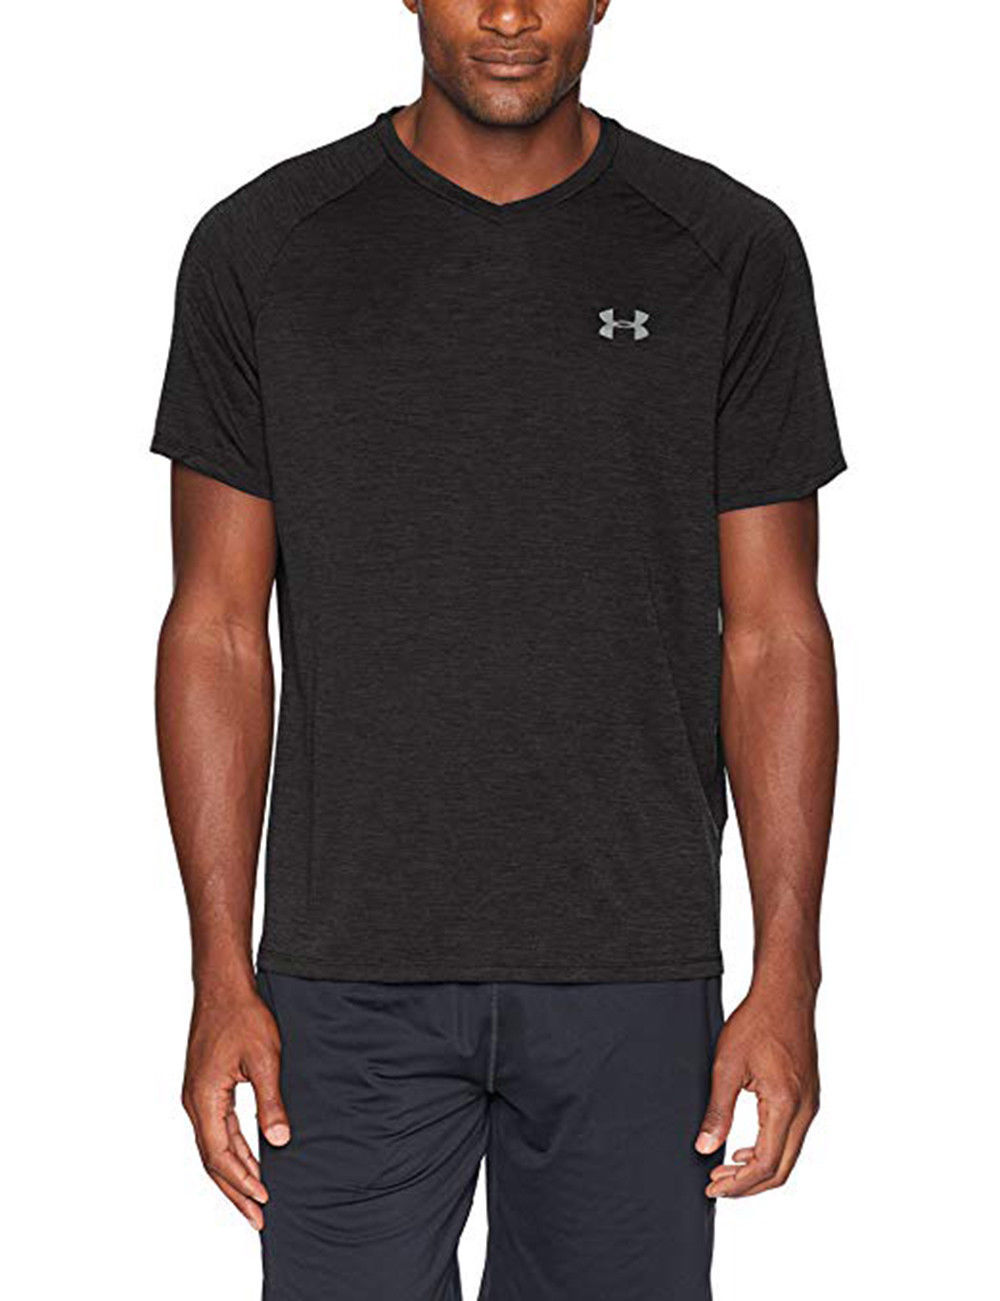 Under Armour Men's Tech V-Neck, Black/Graphite, Large